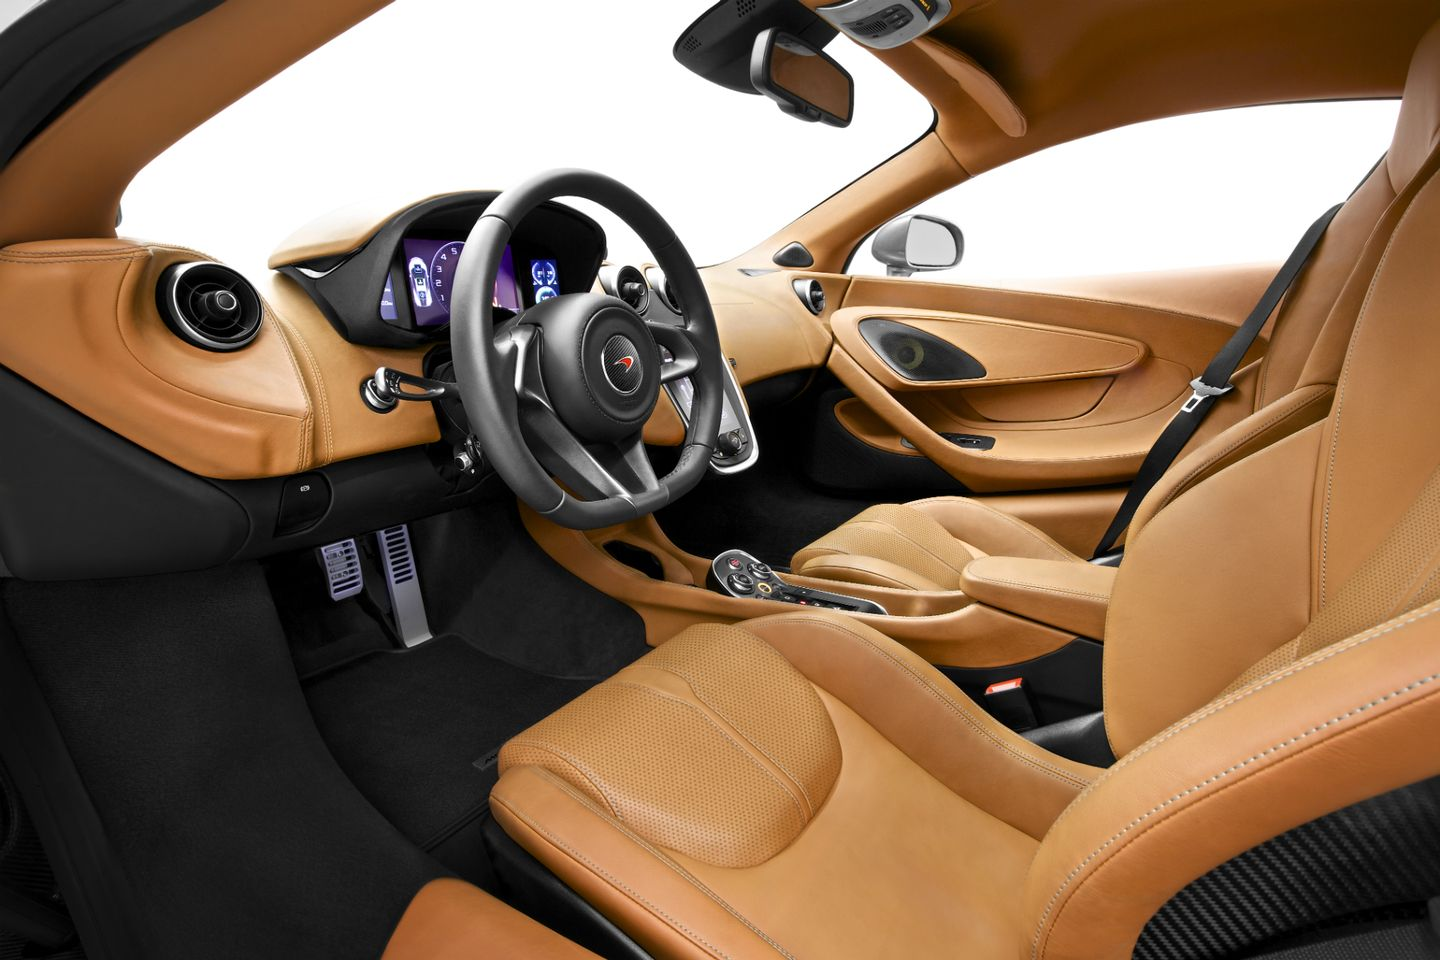 Category Car Release >> This Article Is Excerpted From The Blog New Car Release In This